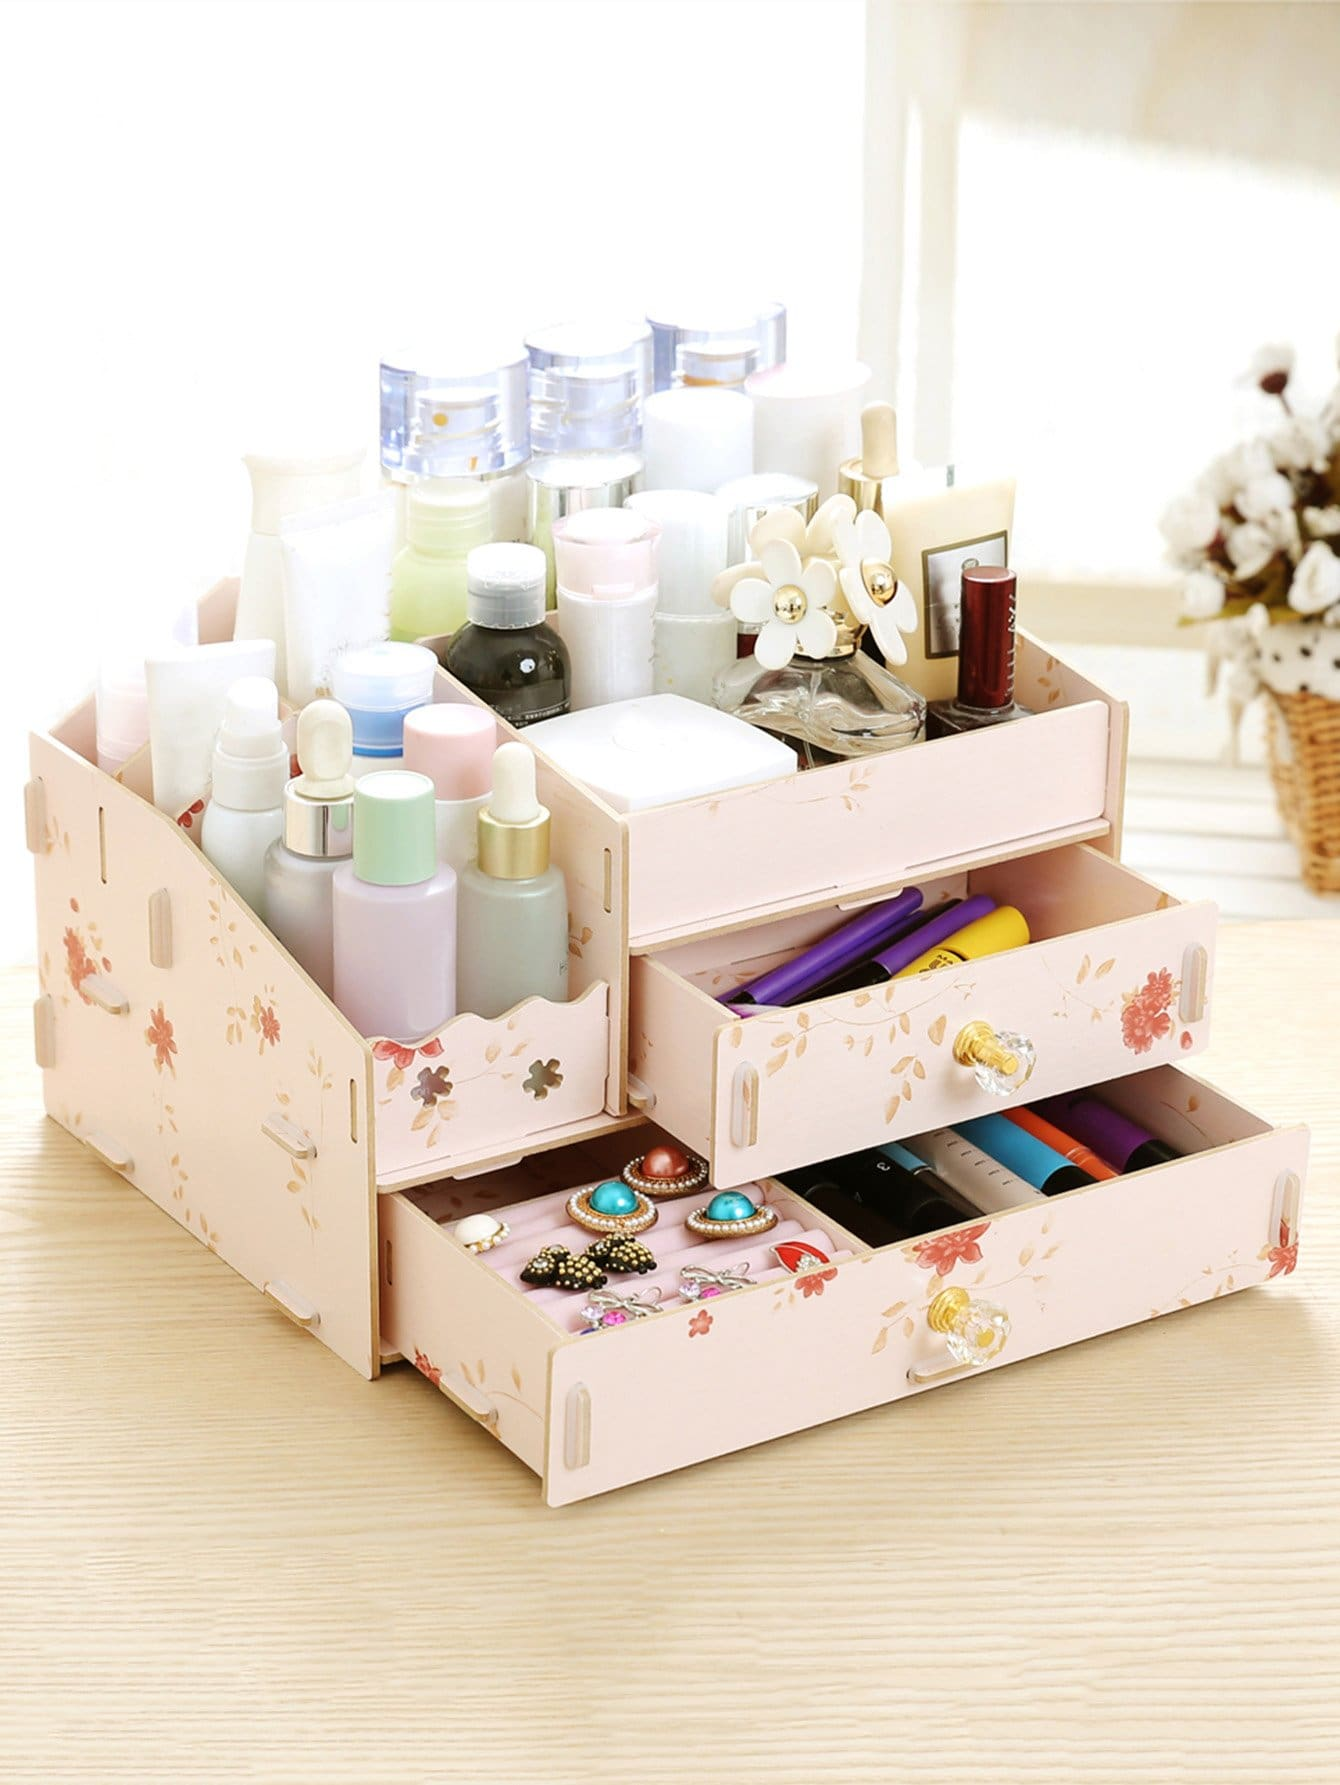 Flower Drawer Desk Organizer kitcox01761easaf3274bl value kit safco one drawer hospitality organizer saf3274bl and clorox disinfecting wipes cox01761ea